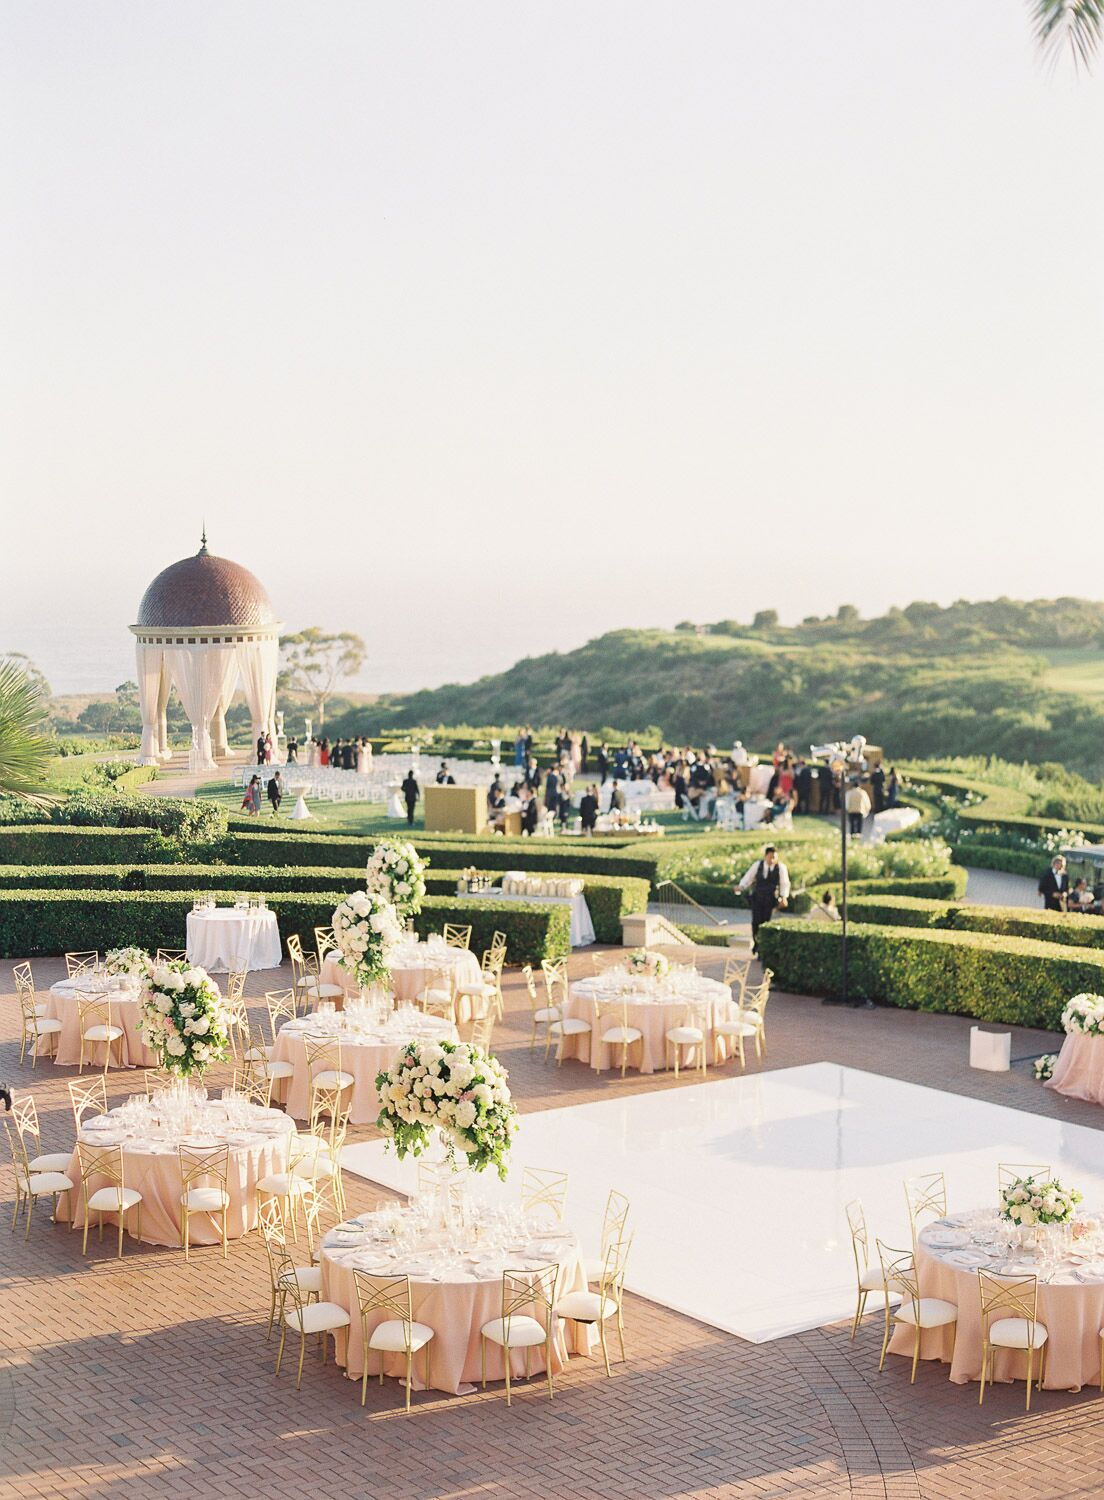 Overhead shot of outdoor reception space with round tables